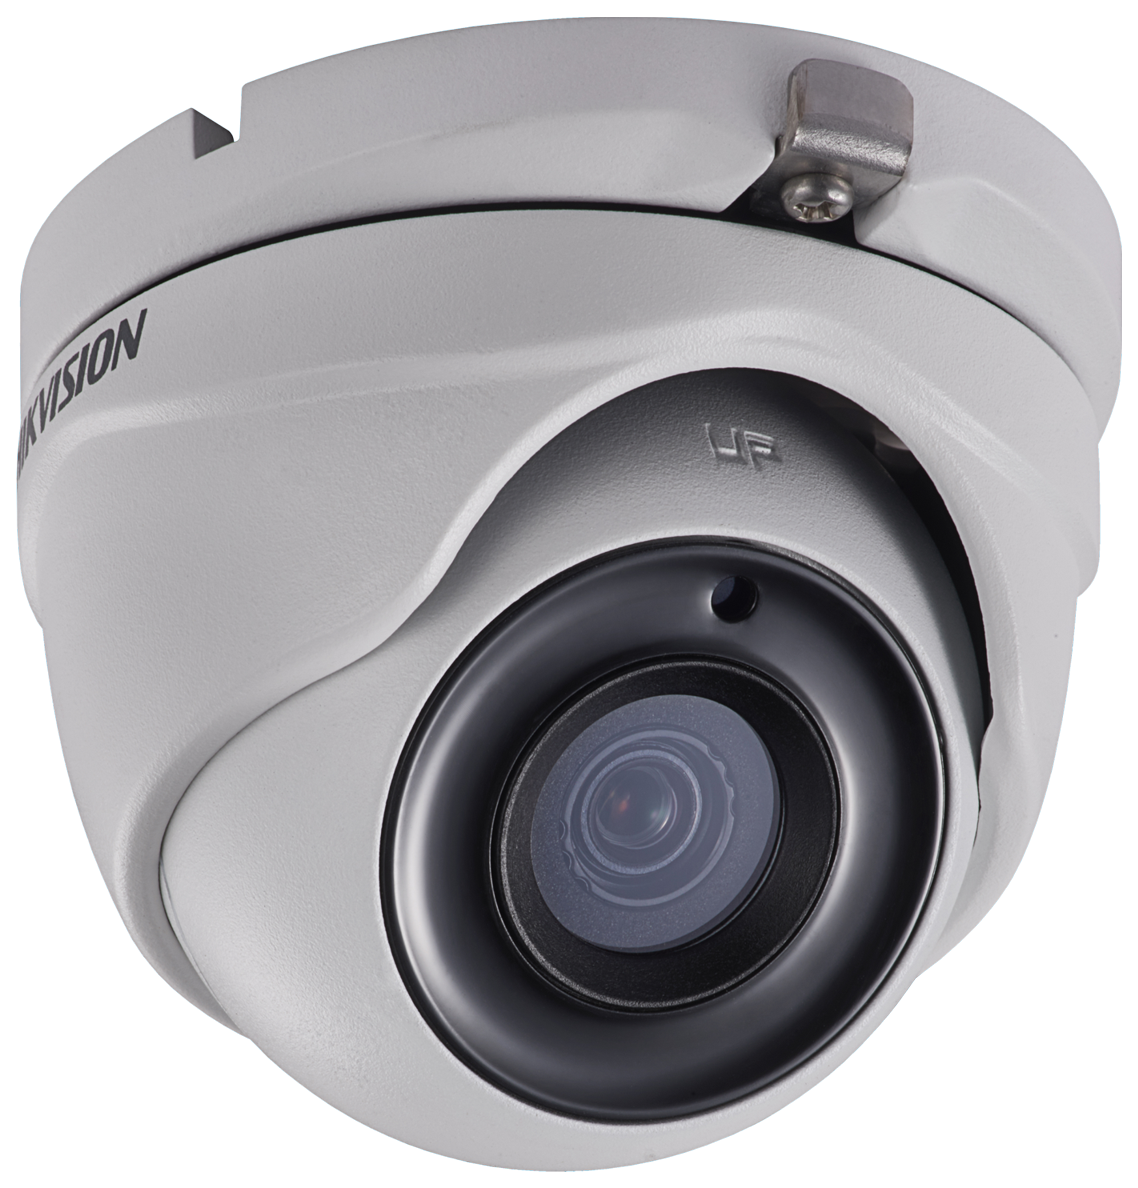 Hikvision DS-2CE56D8T-ITME 2MP Fixed Lens Ultra Low Light POC Exir Turret Camera WDR IP67 POC 20 Smart IR DNR OSD 1080P CMOS